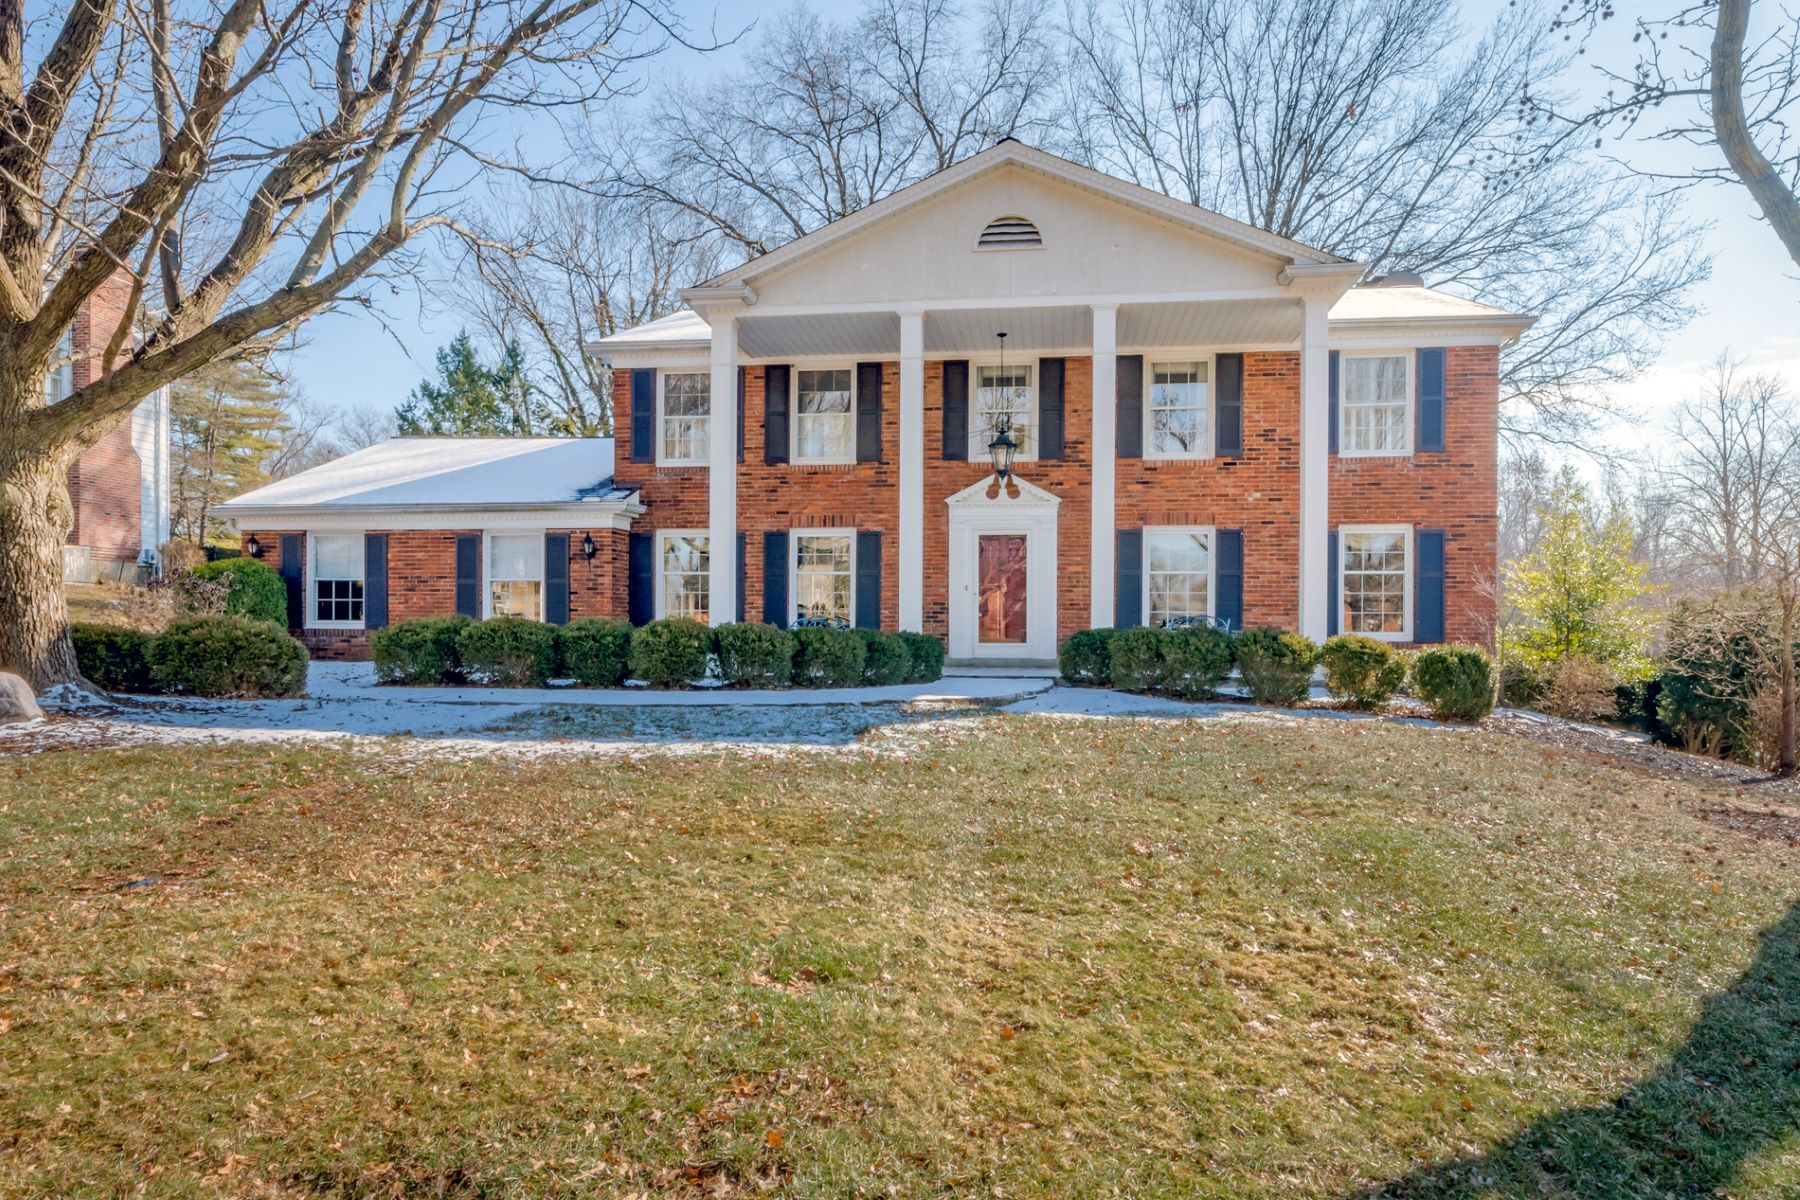 Single Family Home for Sale at Brook Mill Lane 44 Brook Mill Lane Town And Country, Missouri 63017 United States